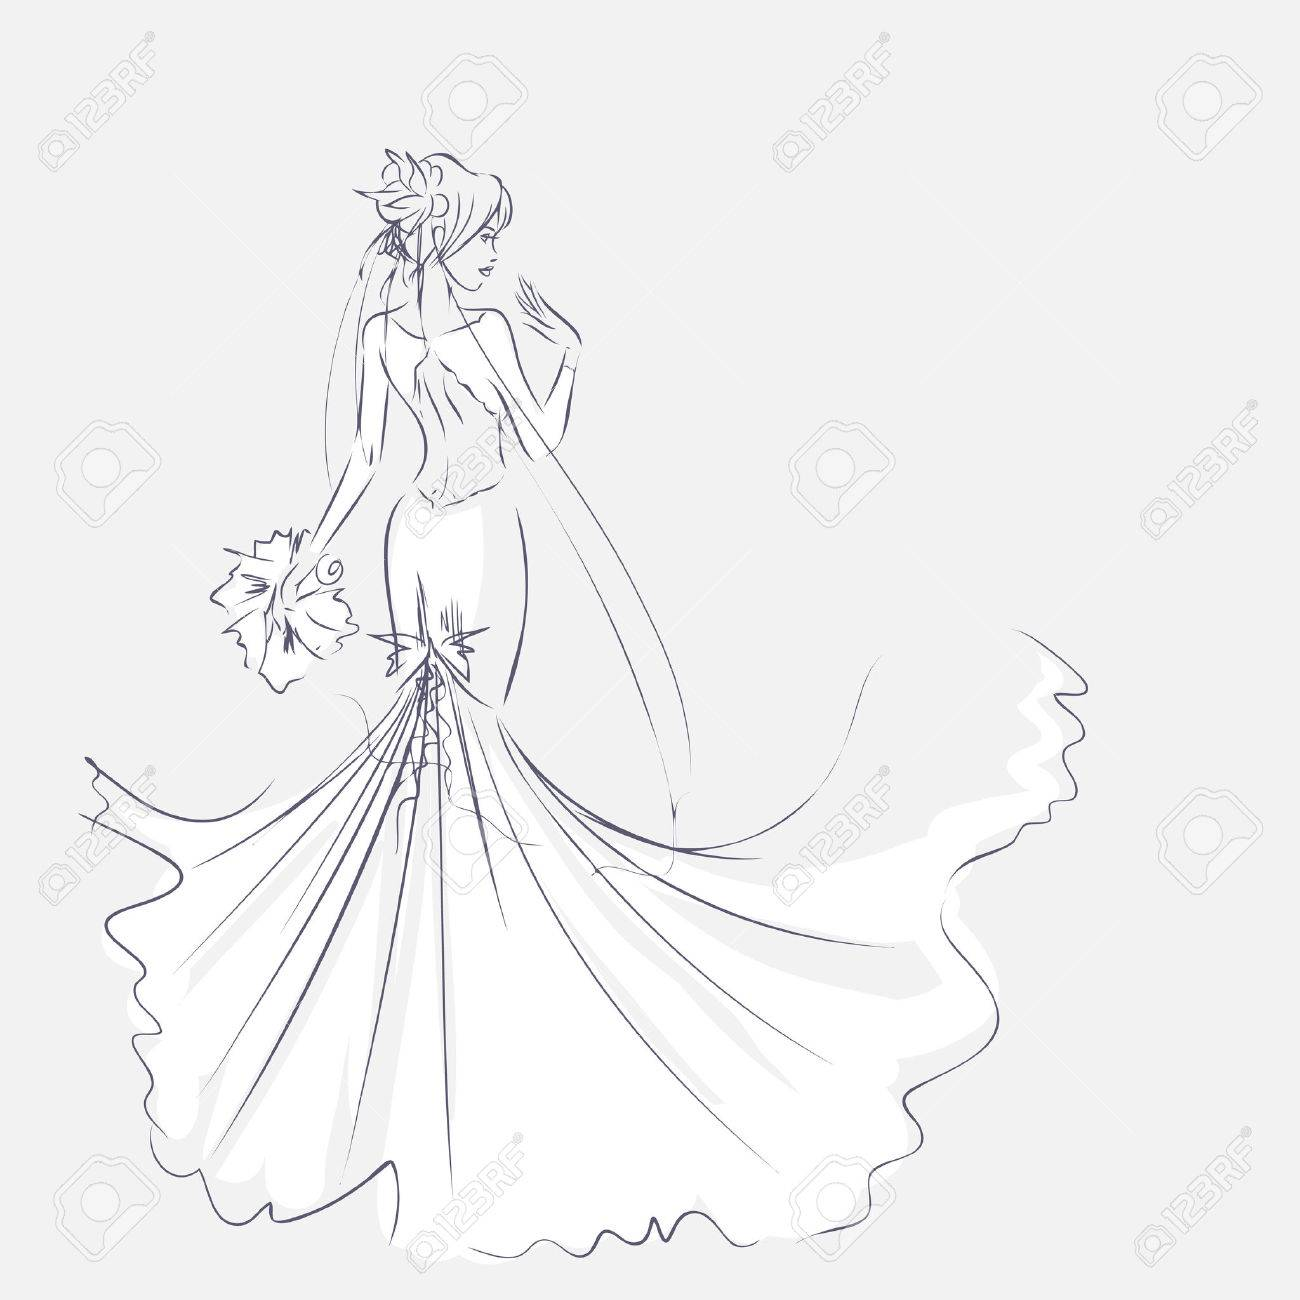 1300x1300 Art Sketch Of Elegant Young Bride With The Bride's Bouquet